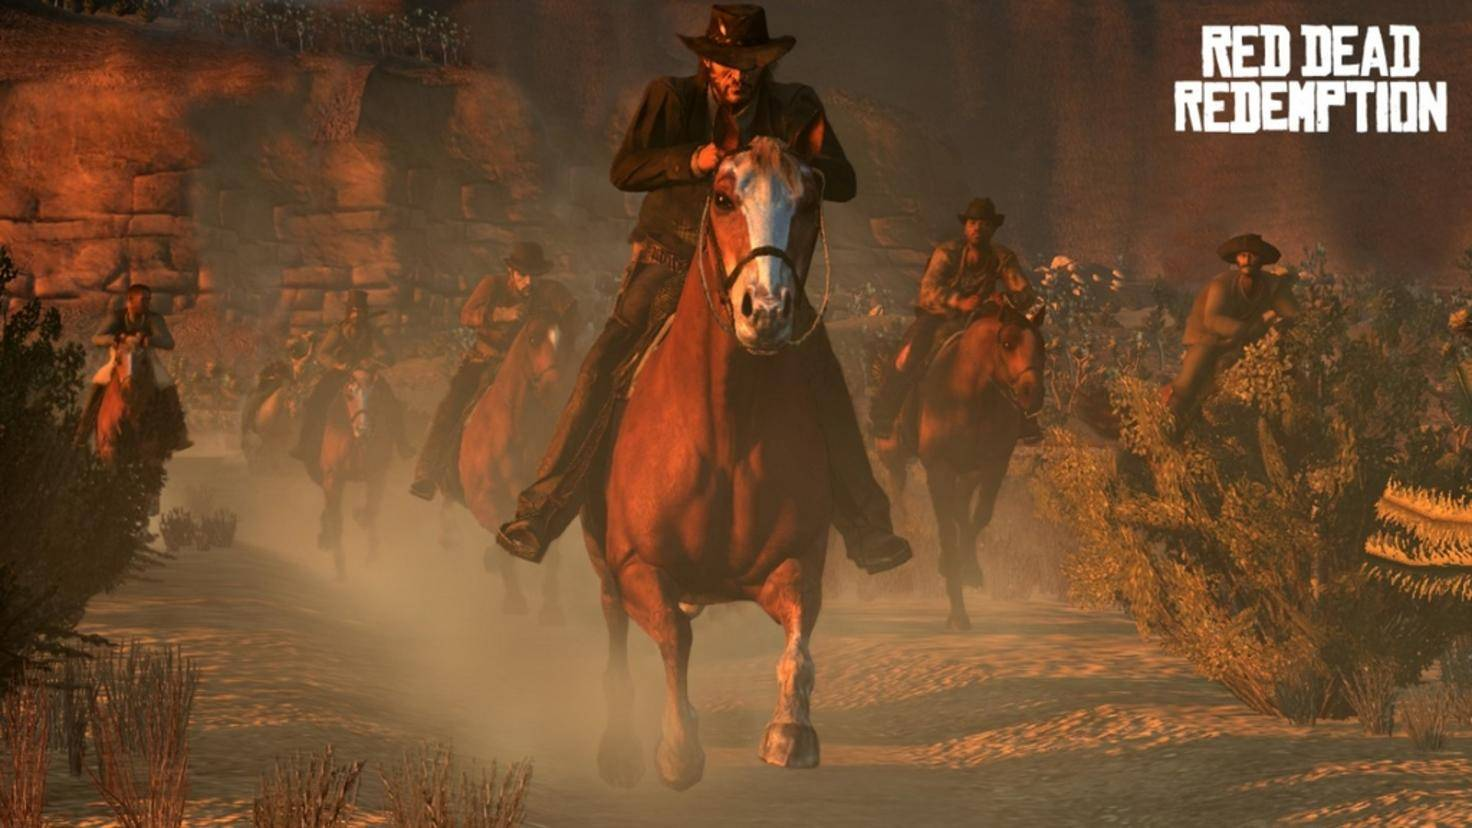 Red-Dead-Redemption-06